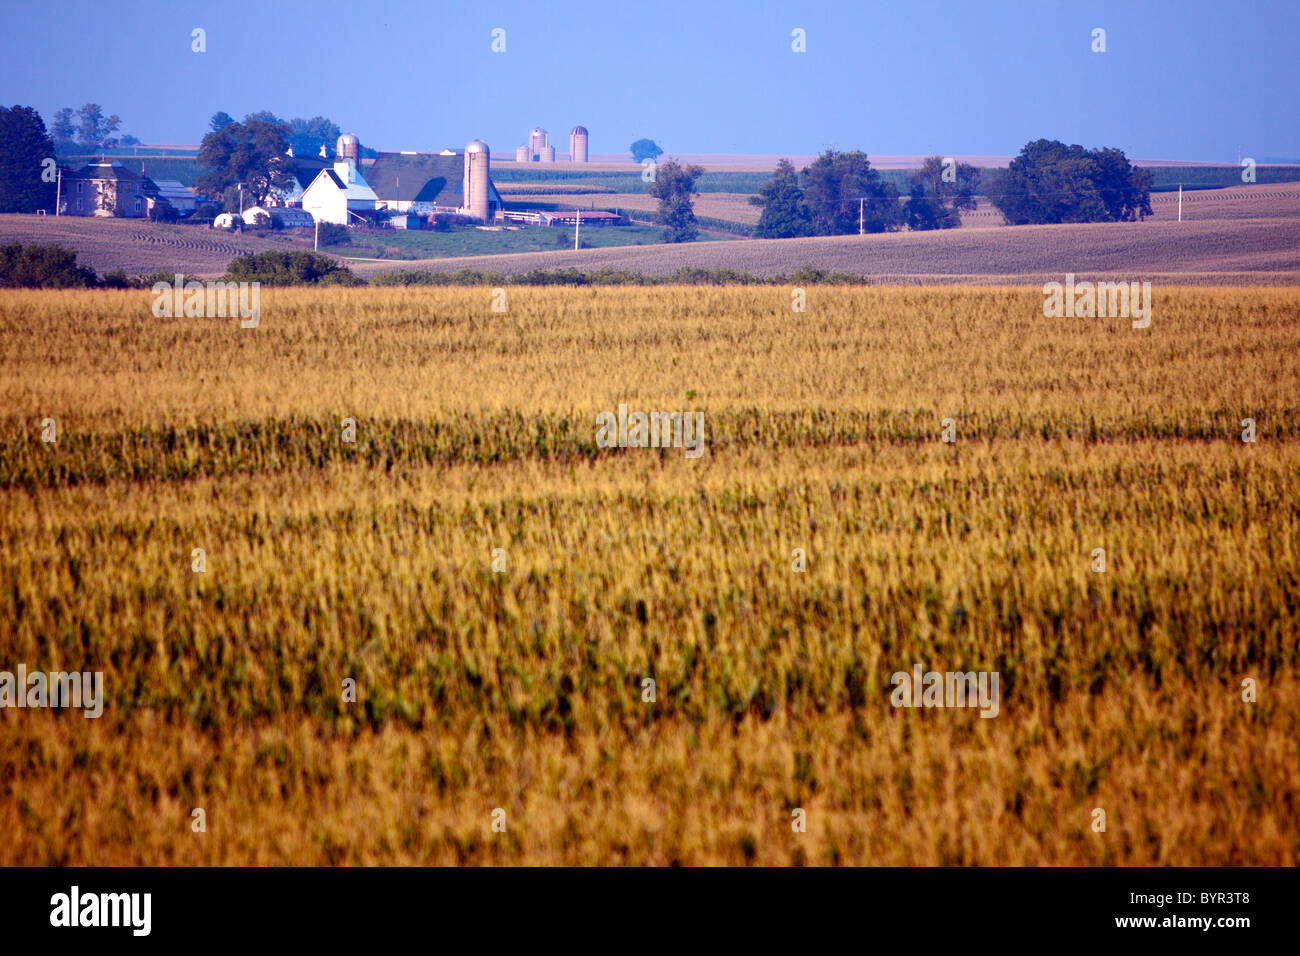 A summer corn field in Central Illinois. - Stock Image